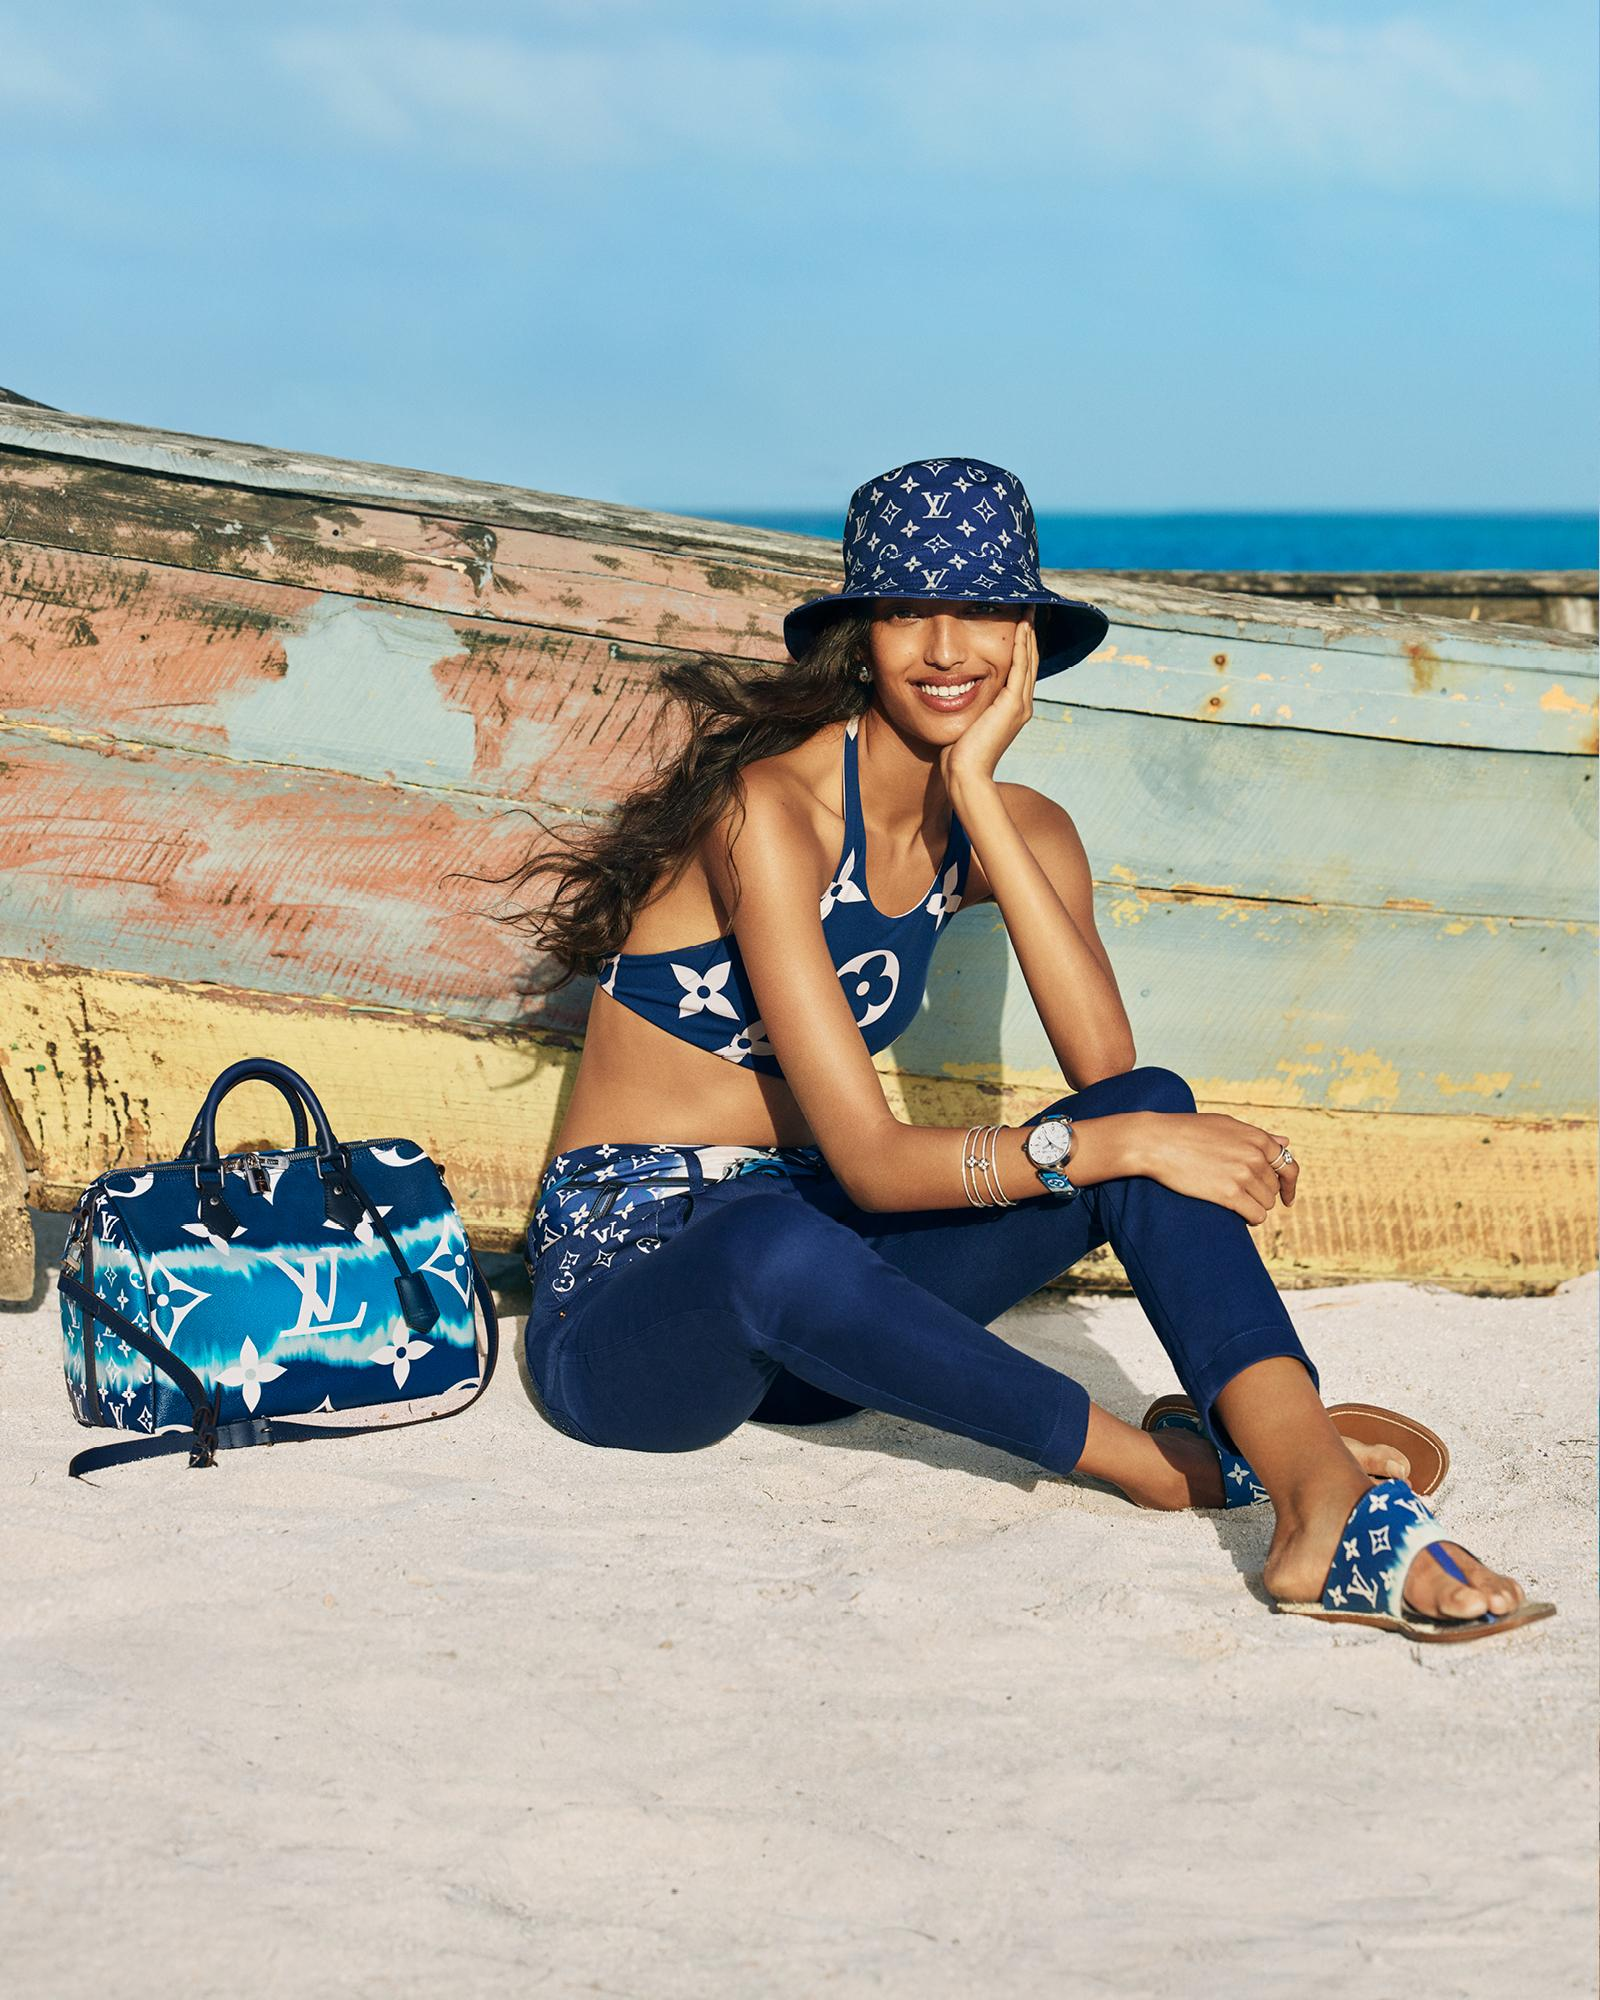 A look from Louis Vuitton summer 2020 collection.